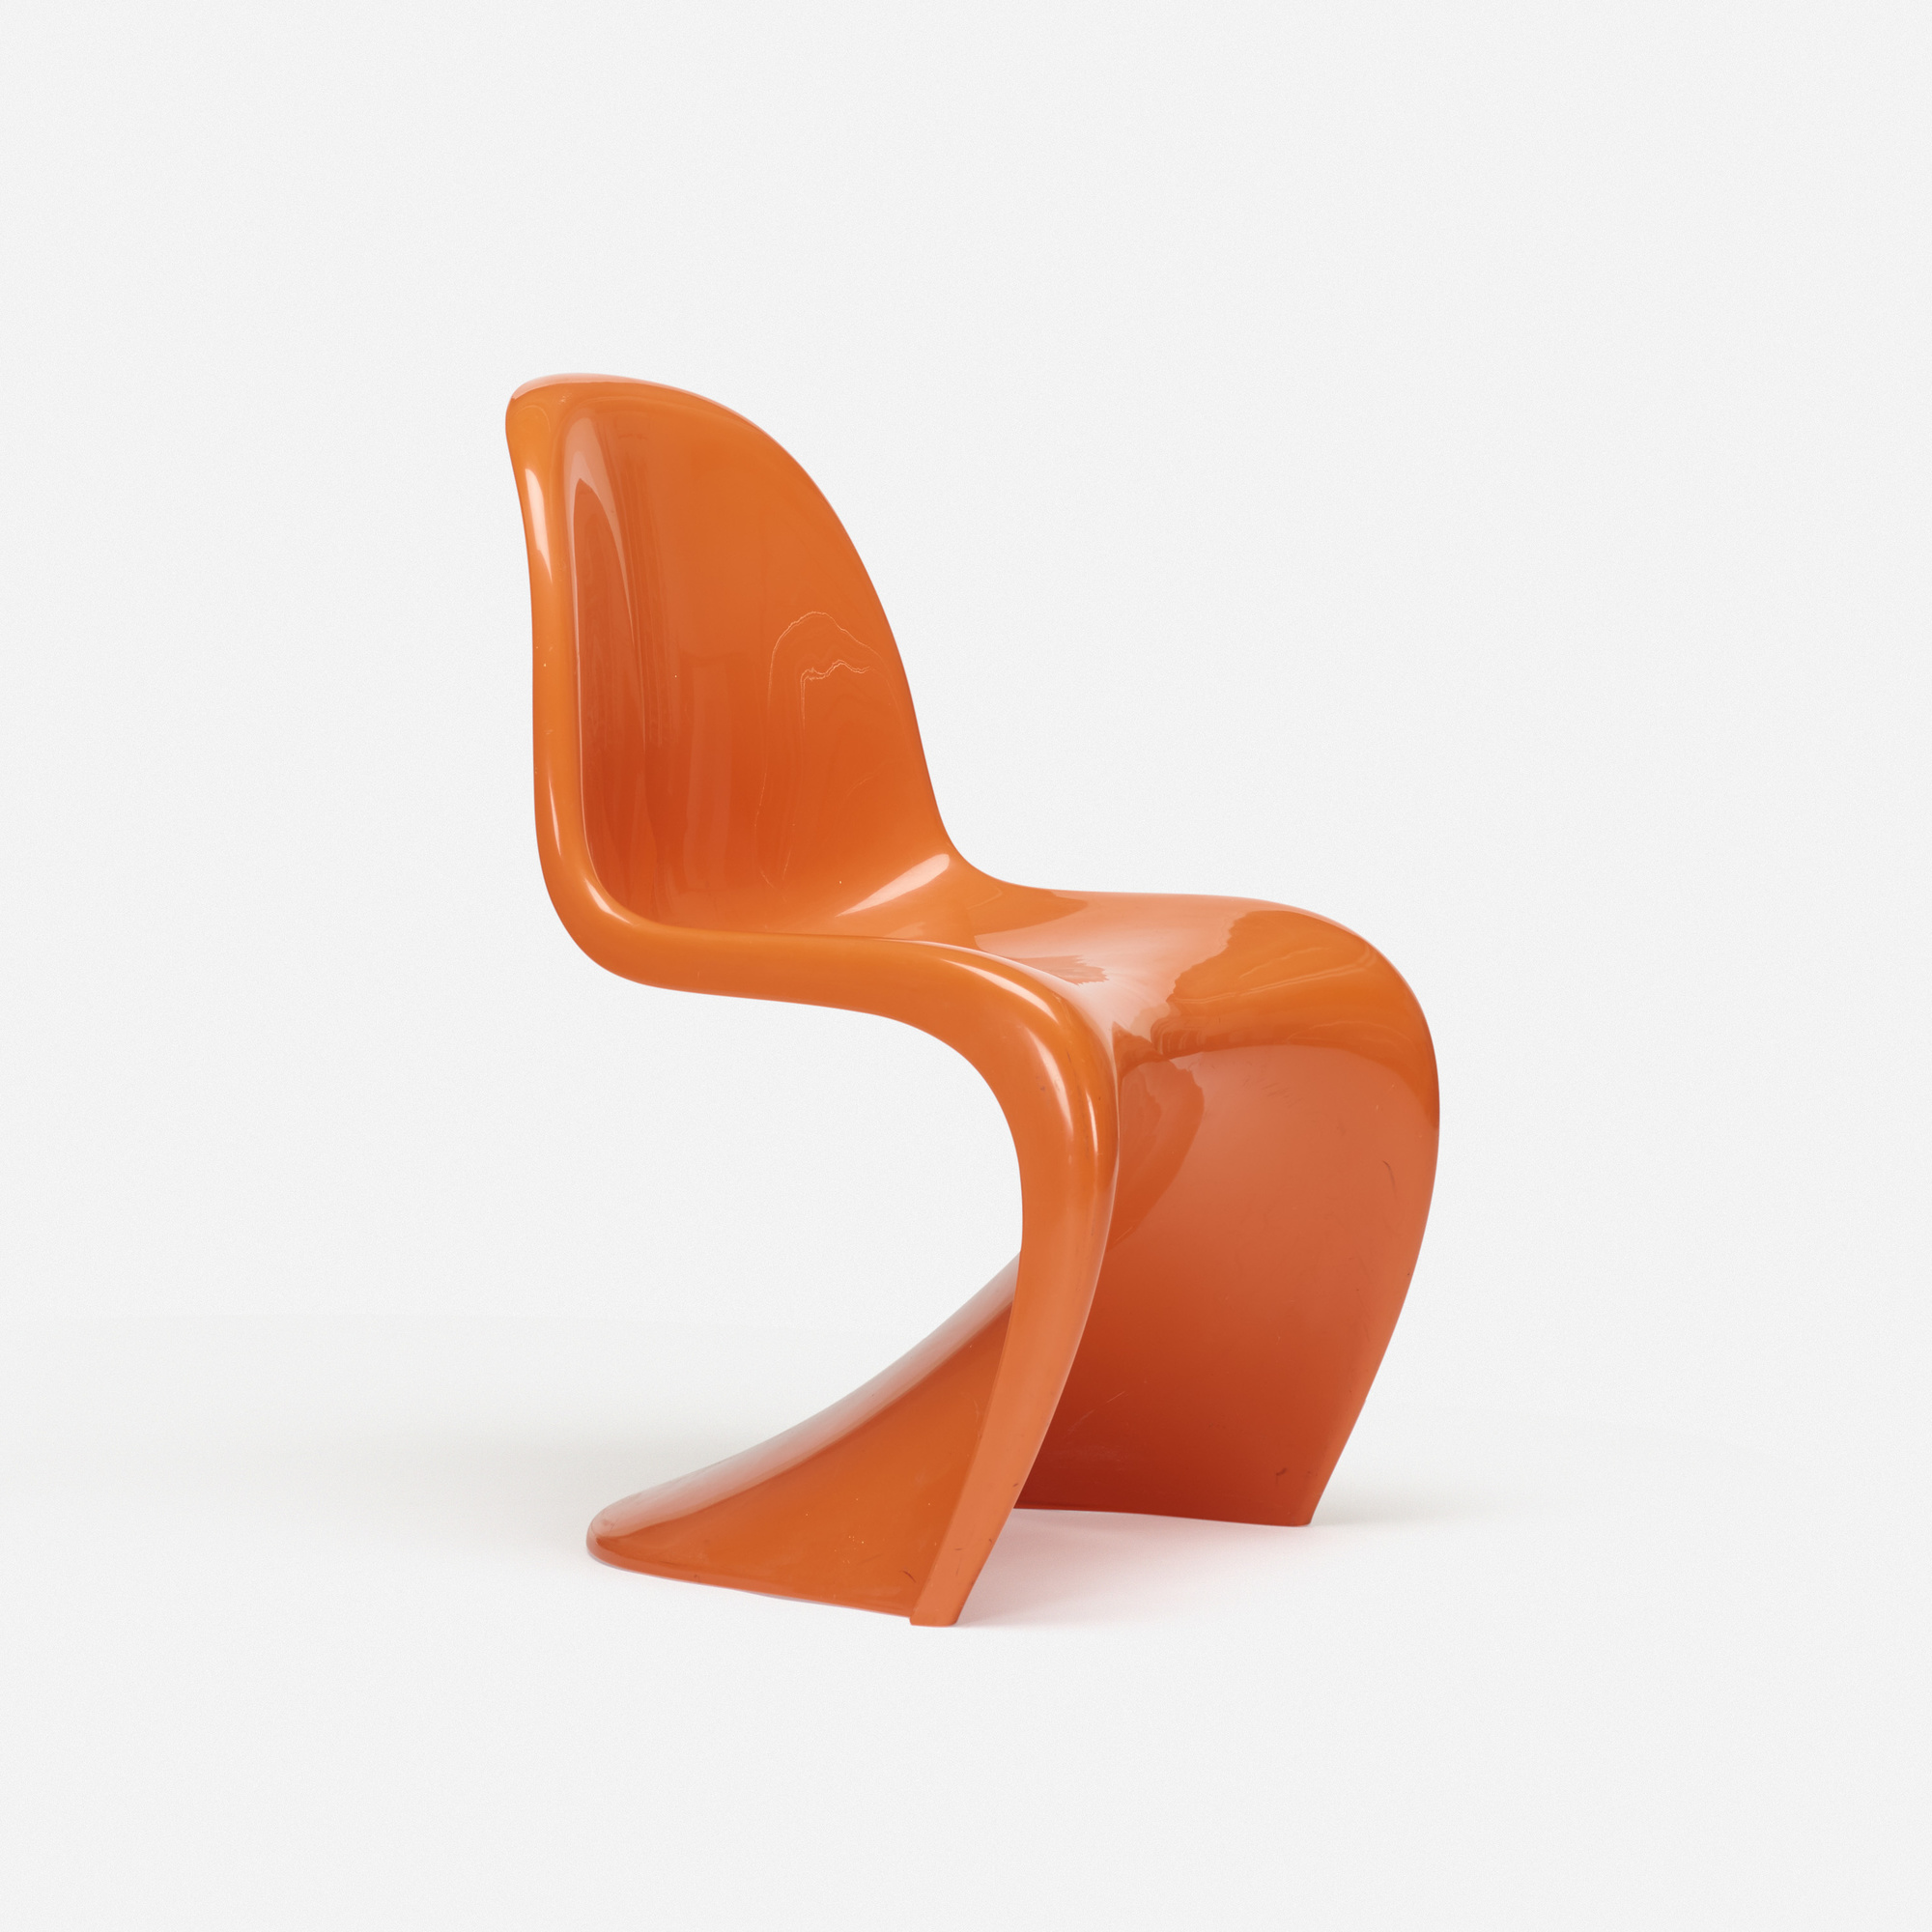 243 verner panton panton chair living contemporary 19 january